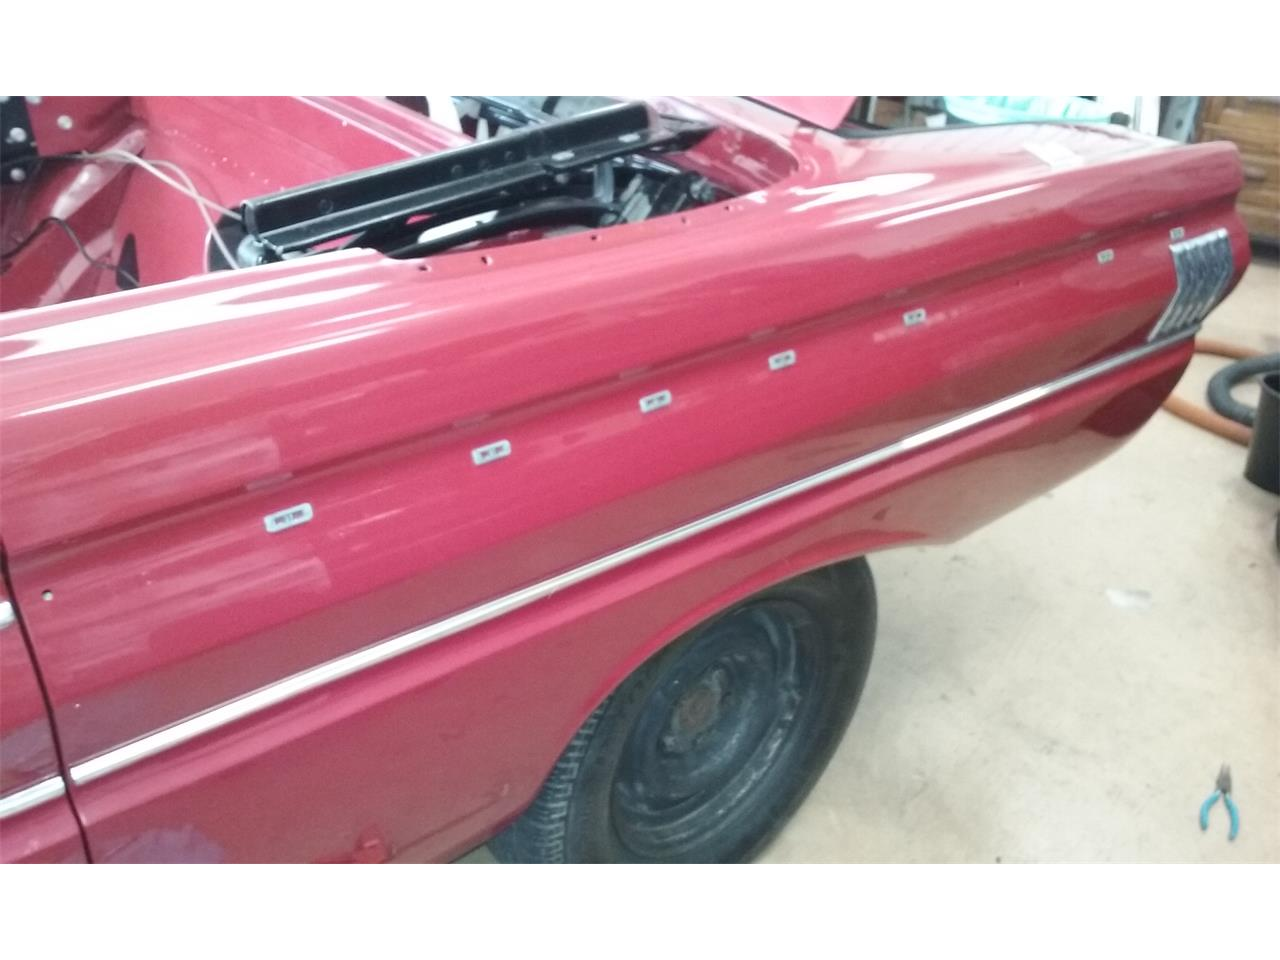 Large Picture of Classic 1964 Ford Falcon located in California - $29,000.00 - L87F